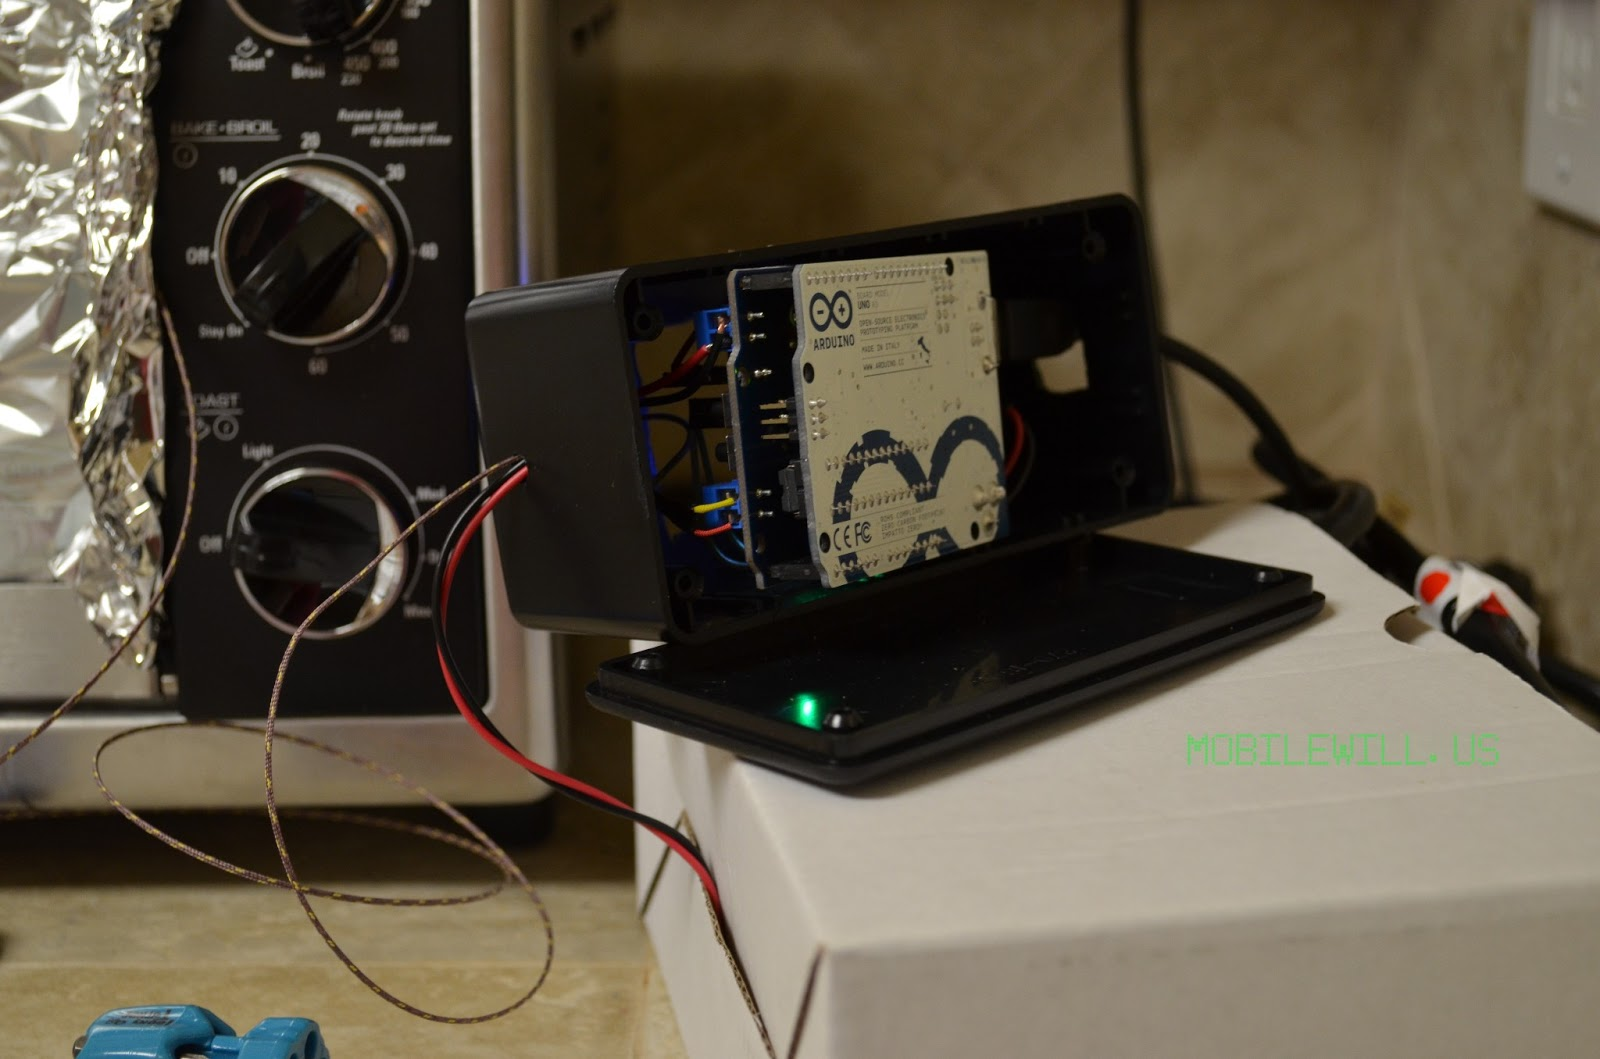 PID Controller open on top of high voltage box with SSR #254266